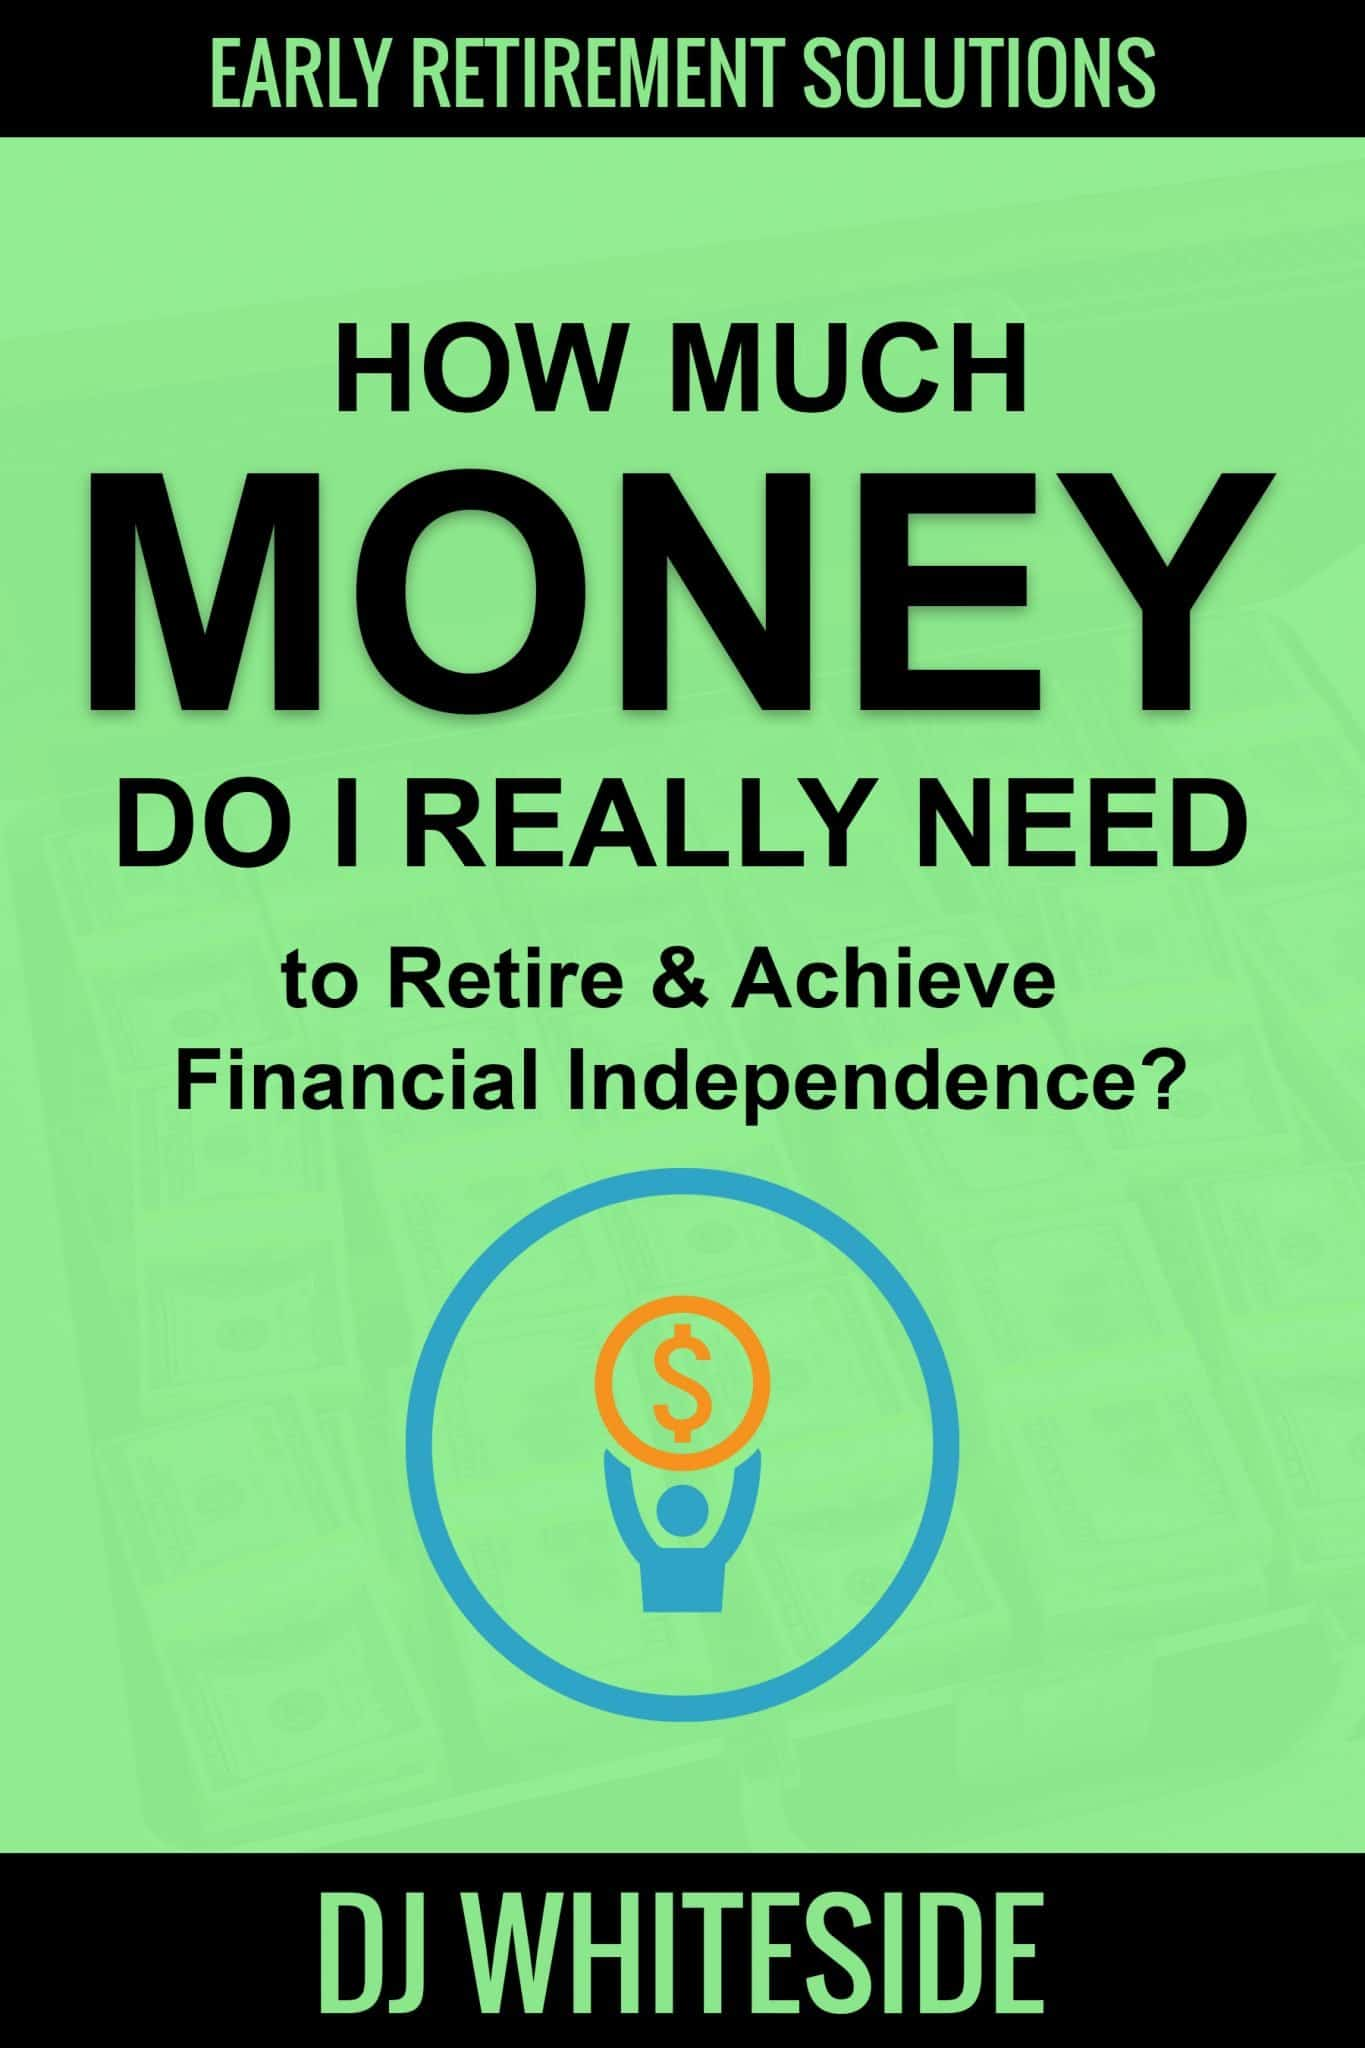 Ebook 5: How Much Money Do I Really Need To Retire?